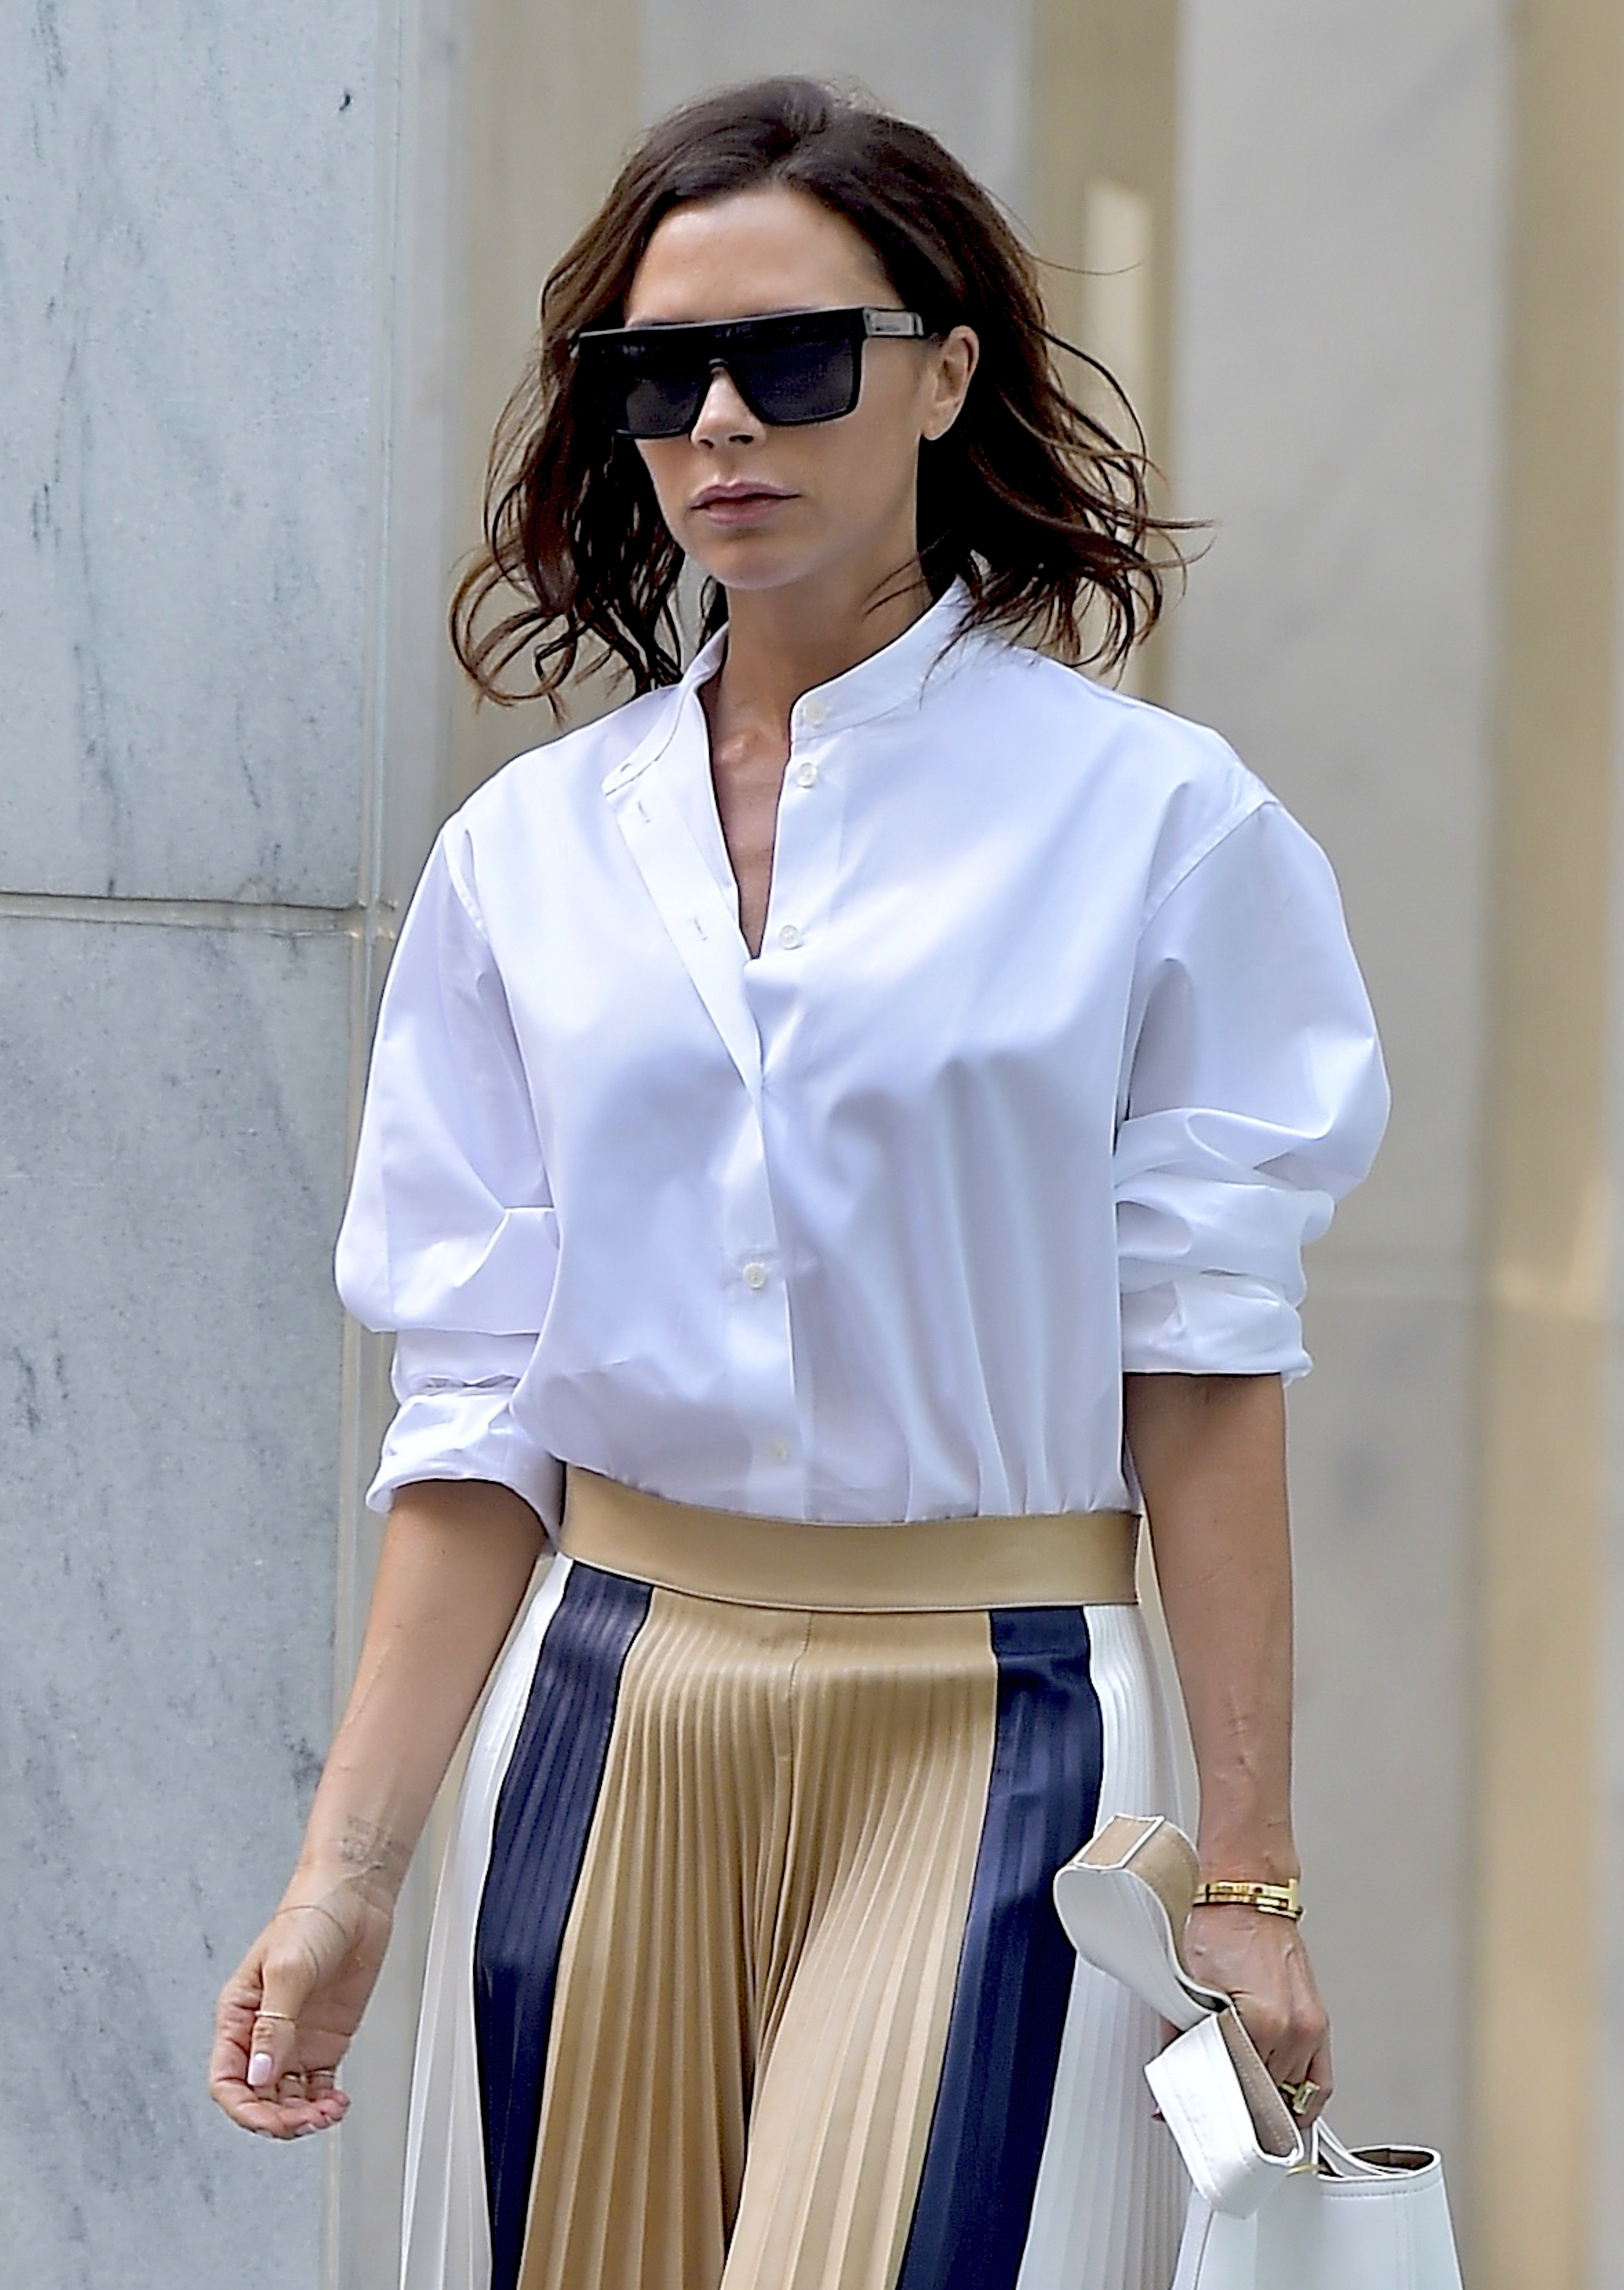 <p>What you wear to the office is equally important as how you wear it. Confidence is everything – as is a hard-working attitude, both professionally and sartorially speaking. Fashion power players Victoria Beckham, Carine Roitfeld and Olivia Palermo have carved a successful career out of looking chic, making corporate classics such as man-style shirts and midi skirts, sharply structured blazers, and classic two-piece suits – always paired with the season's It-shoe – part of their everyday style agenda. And we're taking notes. </p> <p>Here, we've pulled together the executive-chic wardrobe items to help you make your perfectly polished mark while you climb the corporate ladder – with a fashion-forward edge. Whether you're a CEO, budding entrepreneur or rising through the ranks, here's our edit of the office-appropriate essentials to help you smash the glass ceiling in style. Let's show them who's boss. </p>